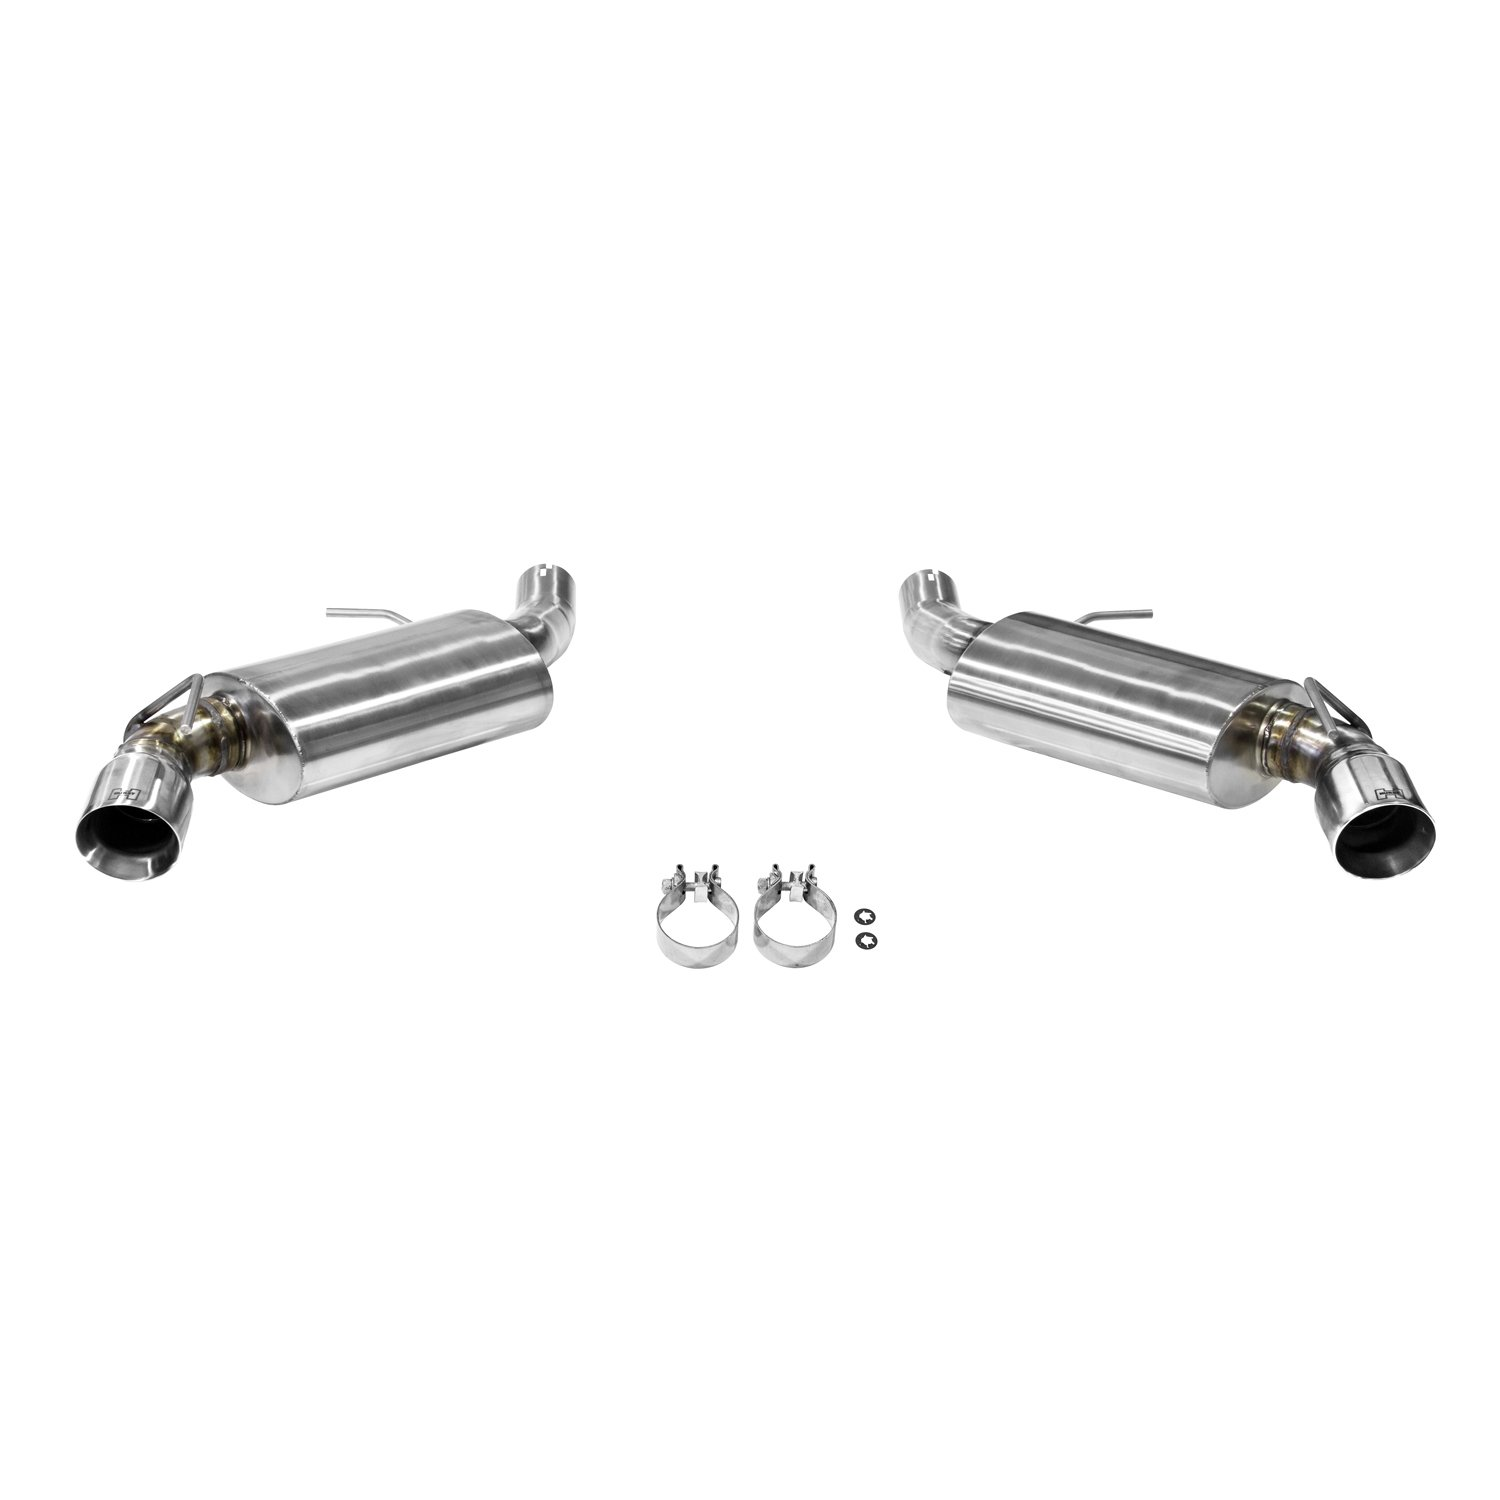 Hurst Hurst Elite Series Axle Back Exhaust System